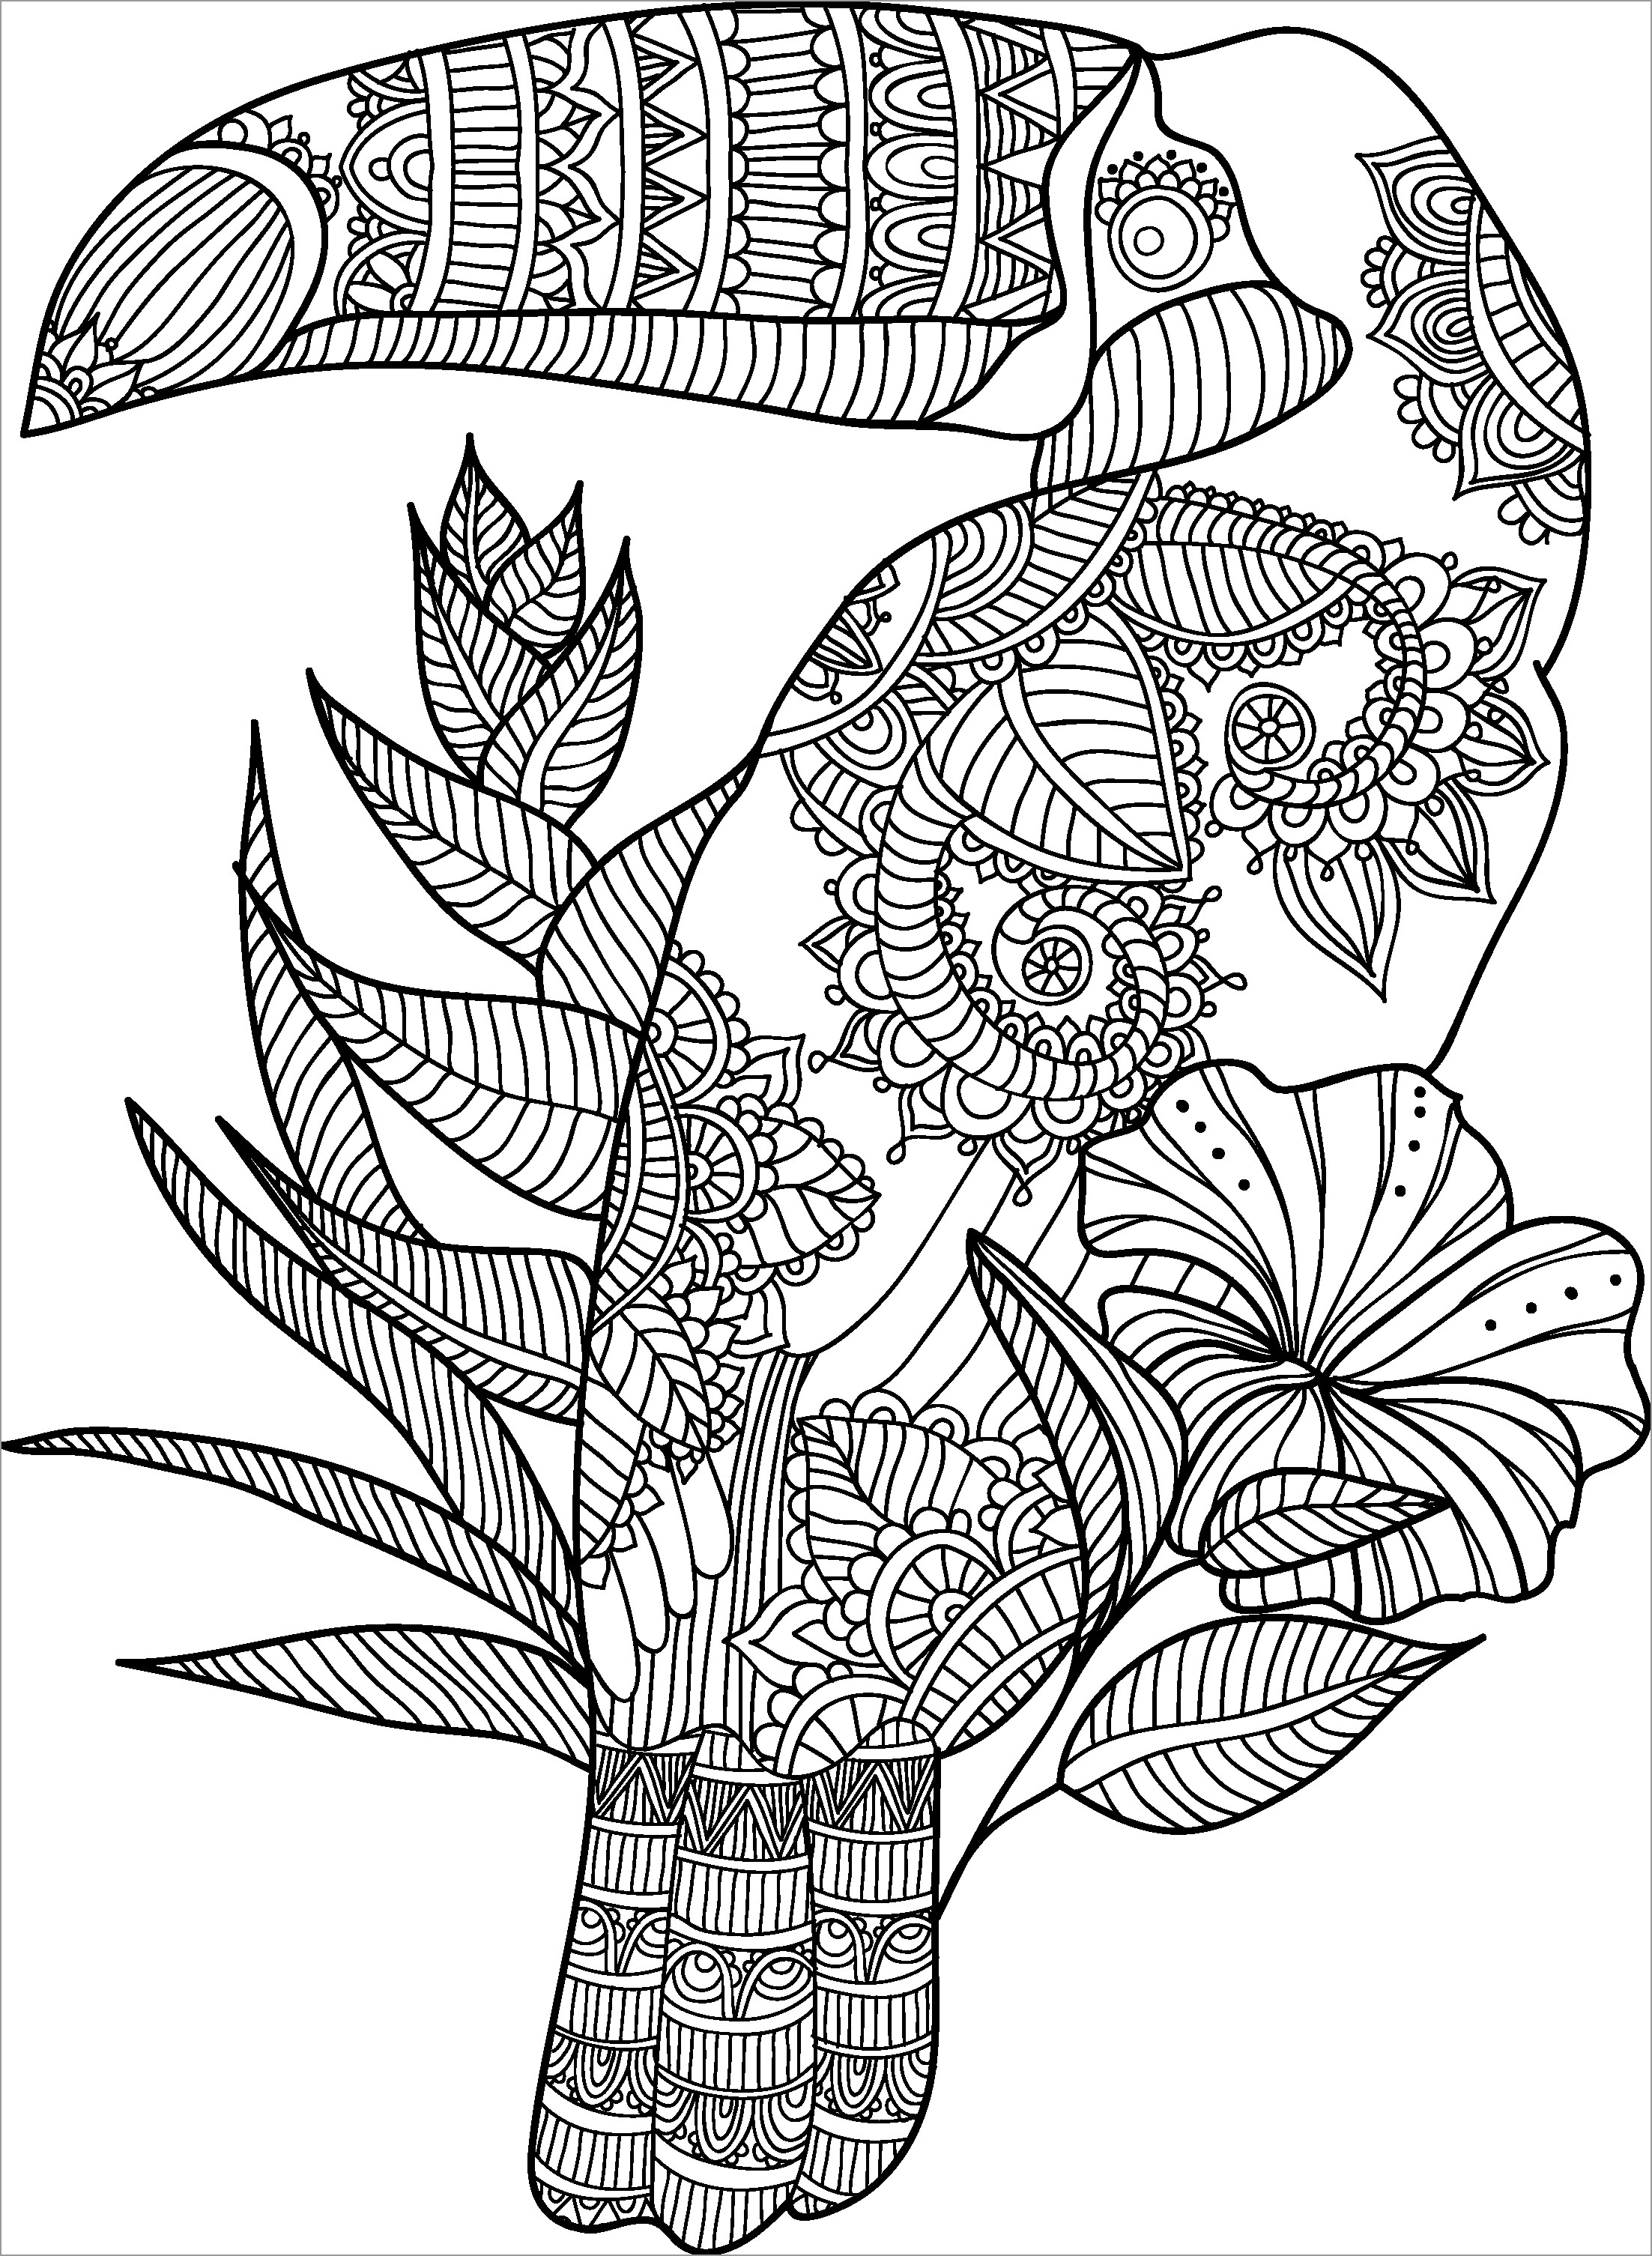 Zentangle Mandala toucan Coloring Page for Adult